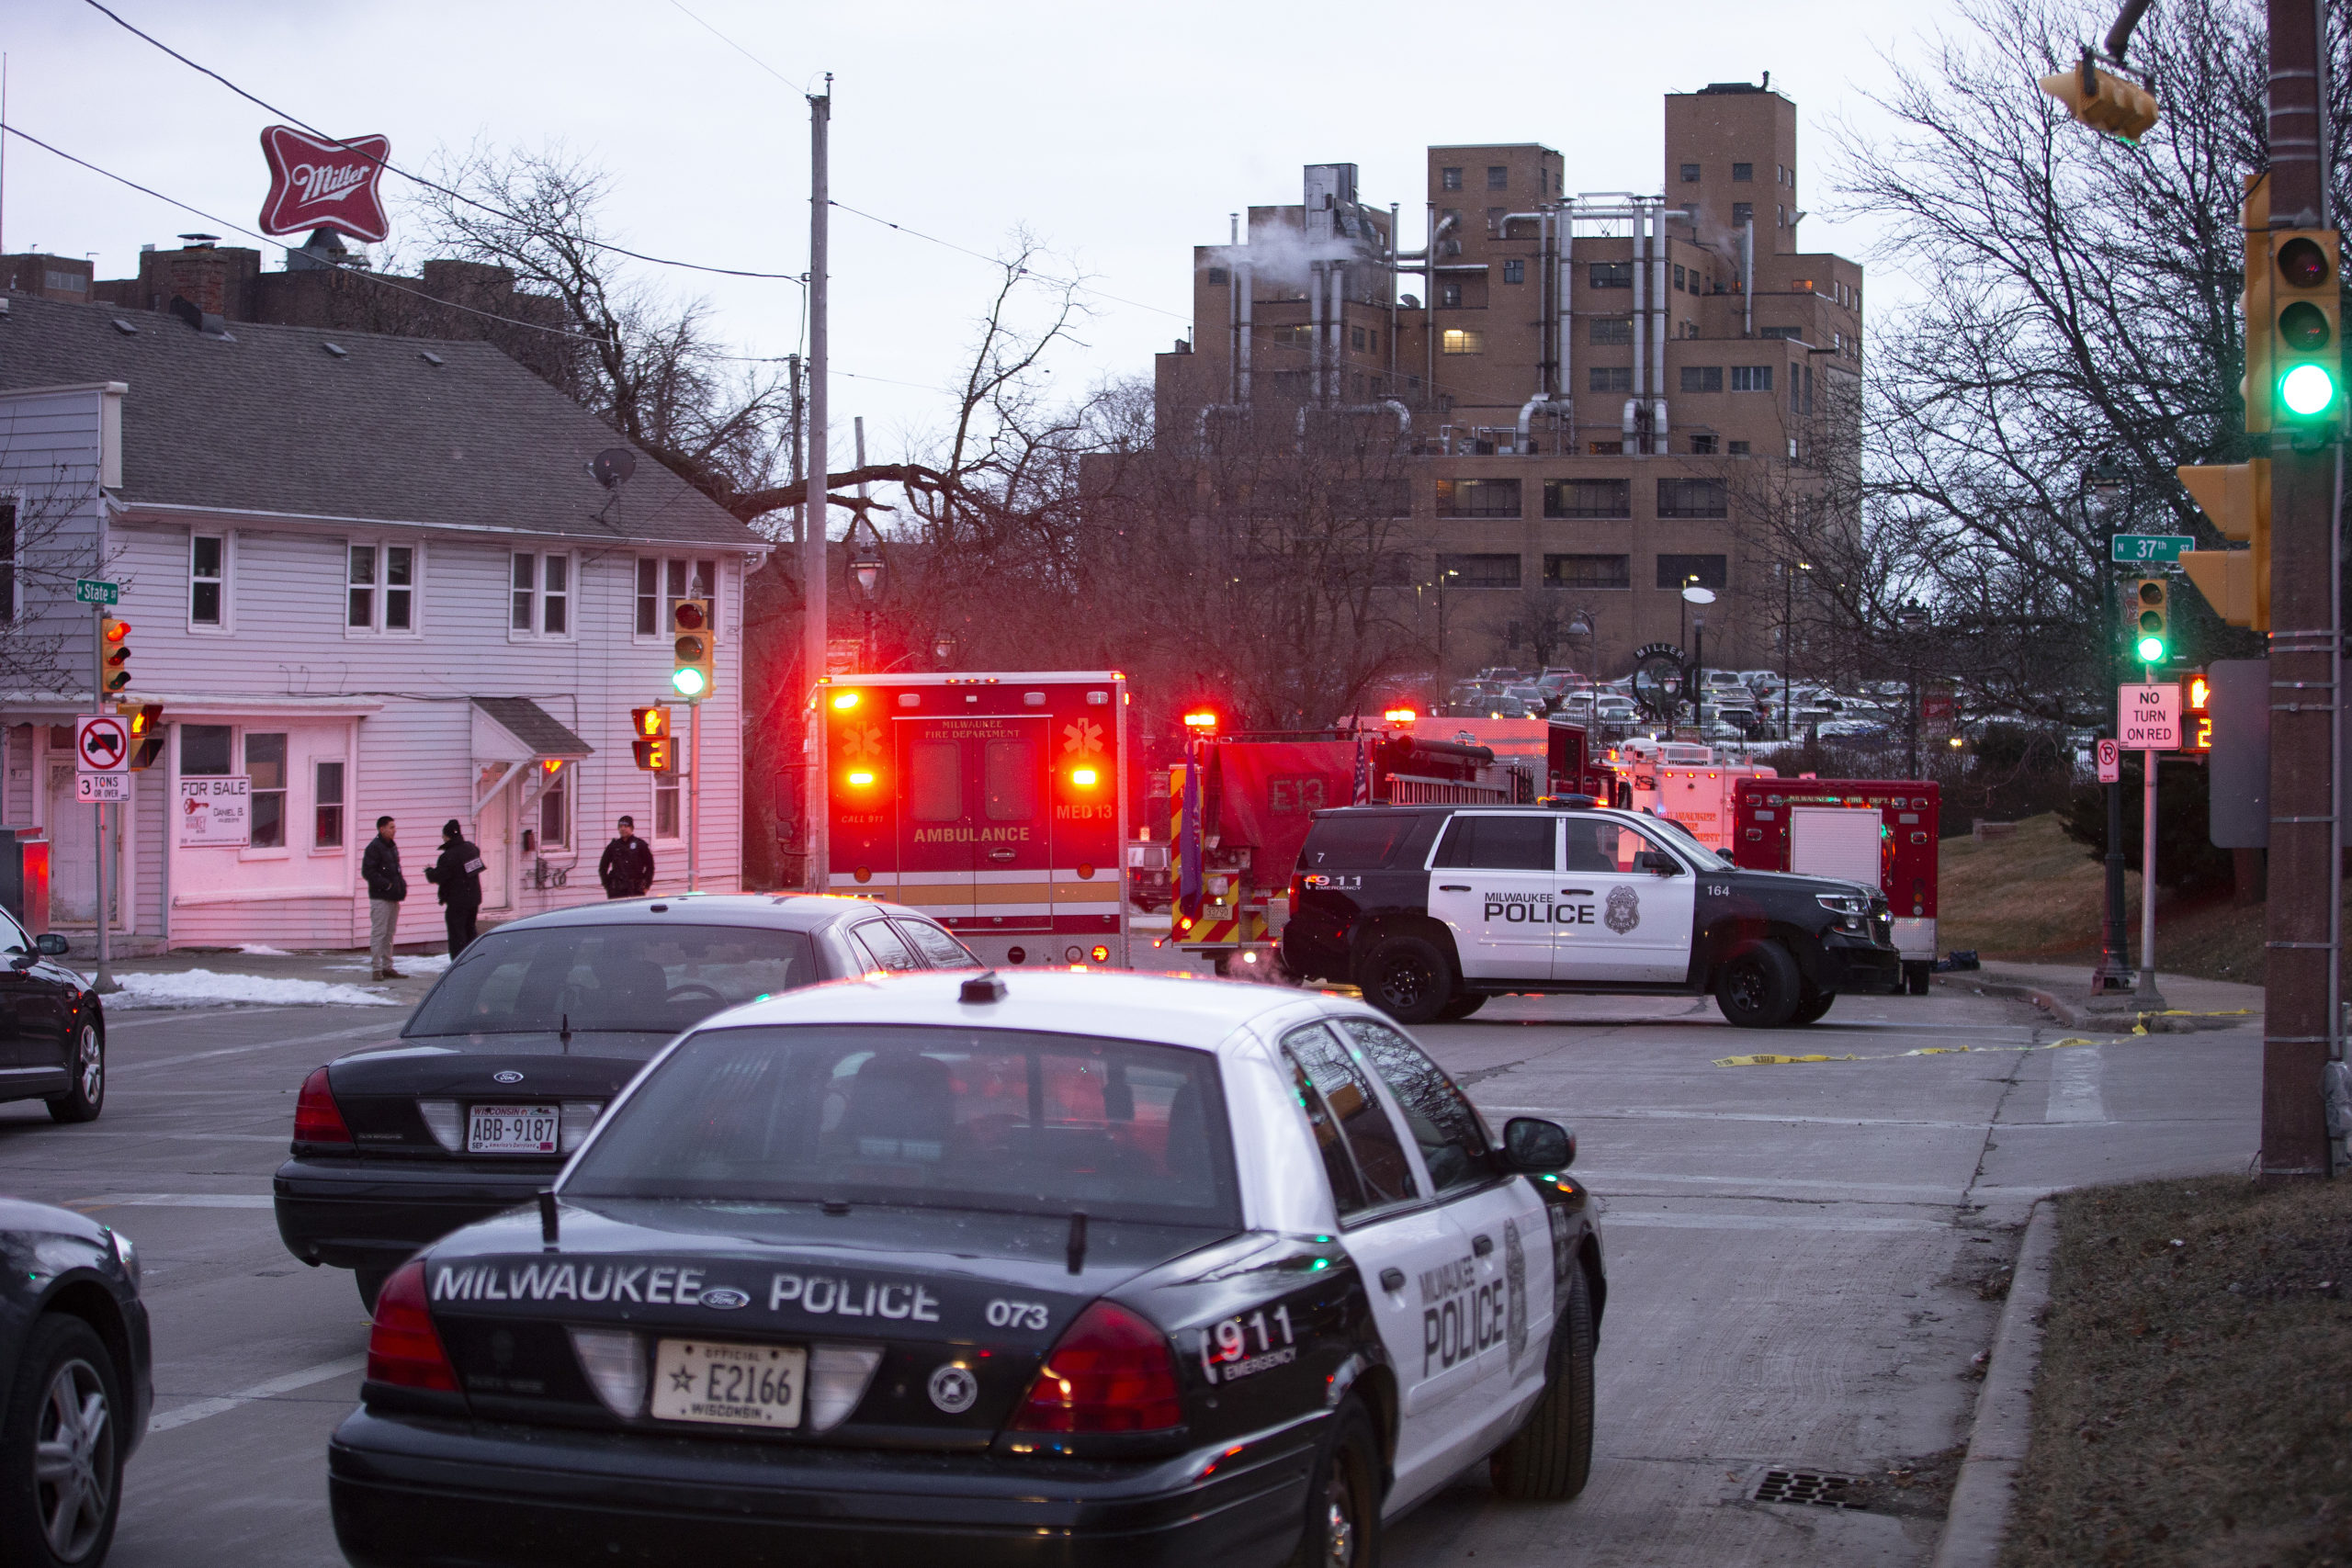 Emergency personnel arrive to the scene of a shooting on Feb. 26, 2020 in Milwaukee, Wisconsin. (Nuccio DiNuzzo/Getty Images)